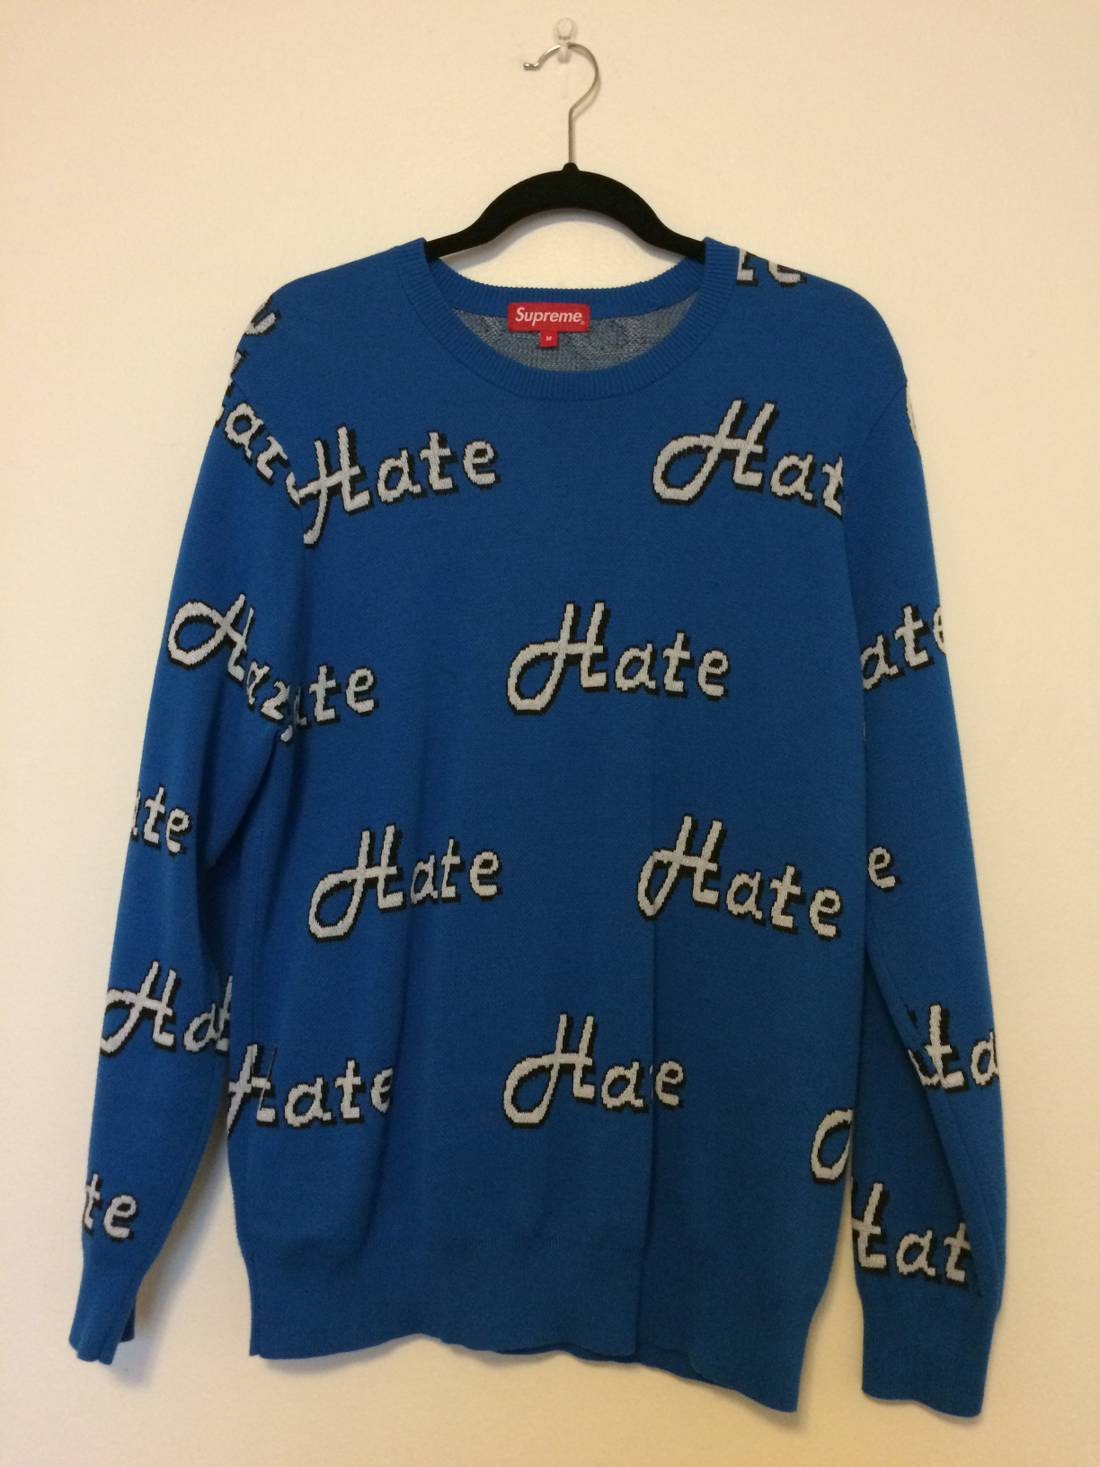 Supreme Supreme Hate Sweater Size m - Sweaters & Knitwear for Sale ...